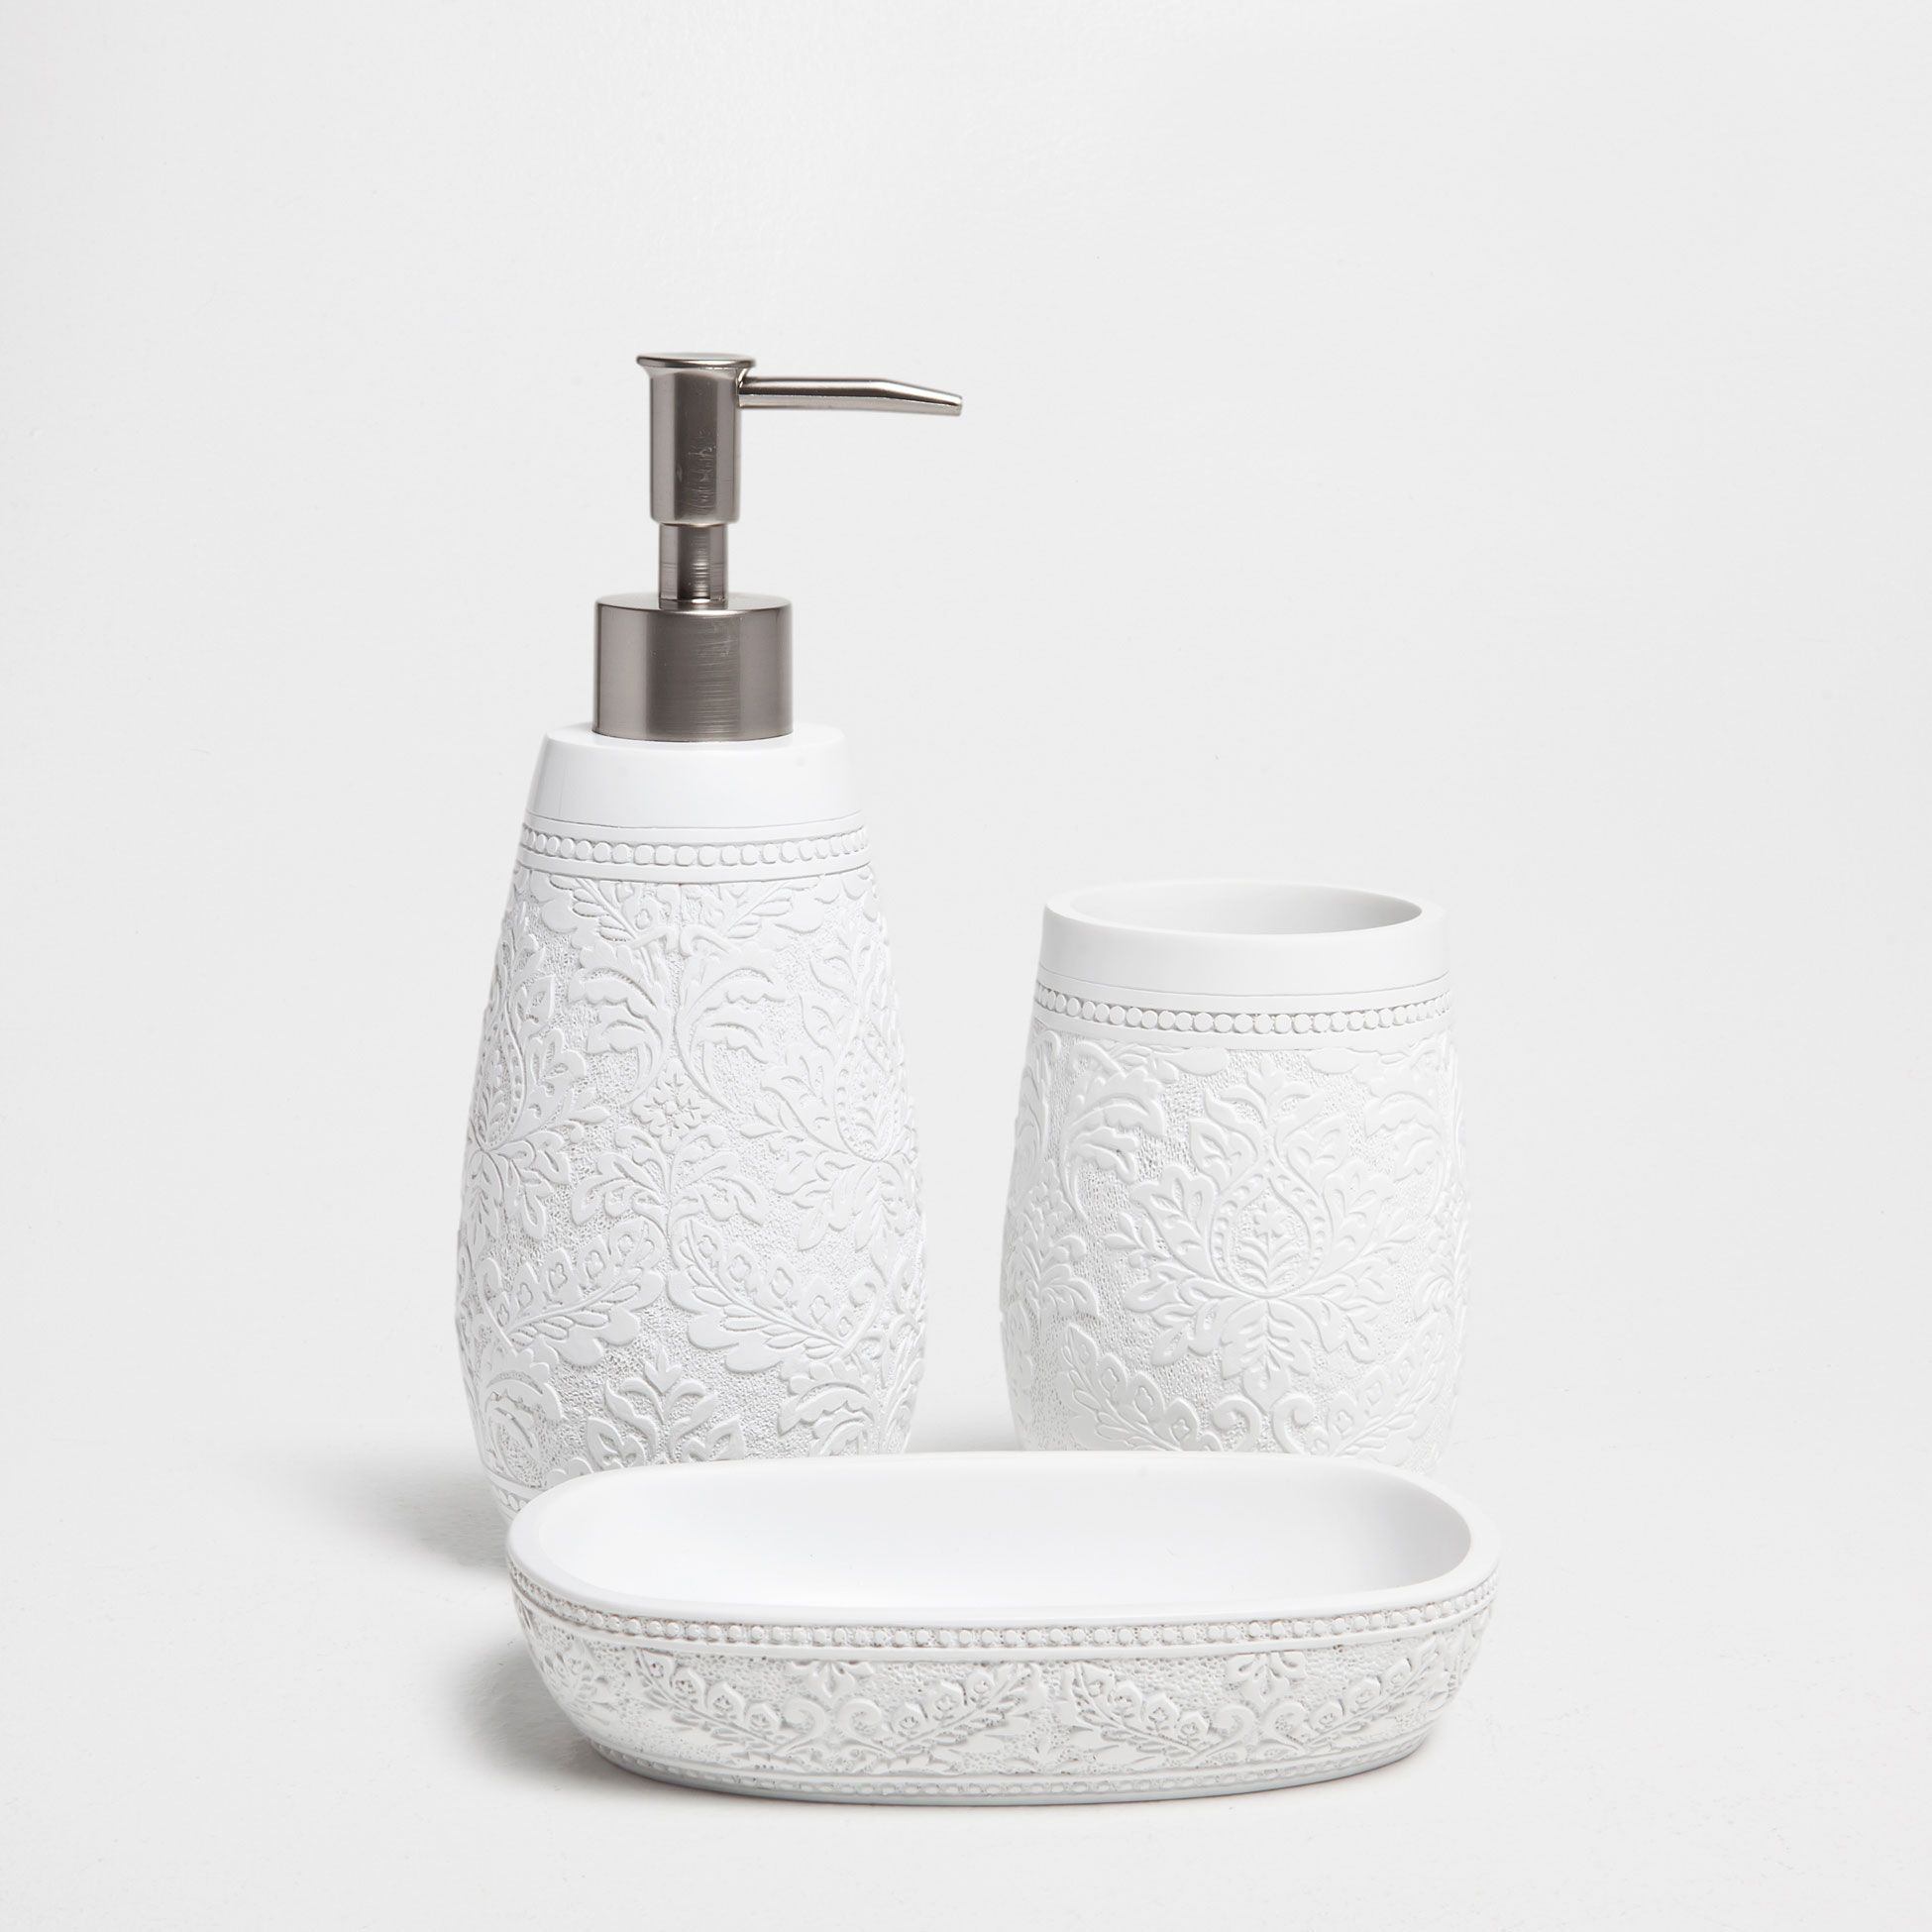 Resin Bathroom Accessories White Resin Bathroom Set Zara Home Home And Of